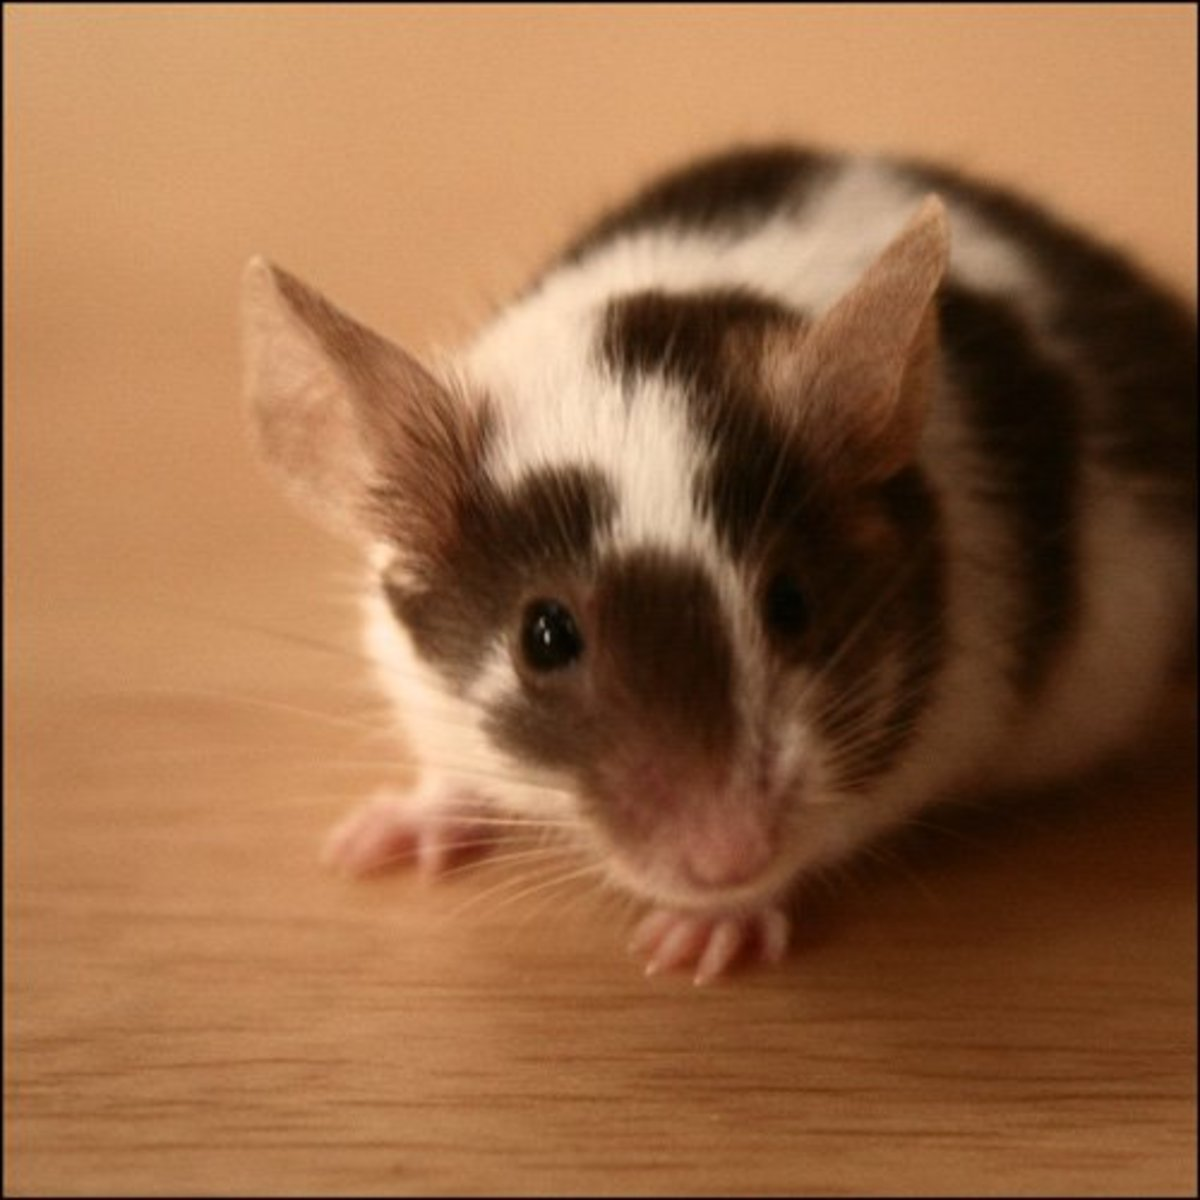 Health Problems in Pet Mice